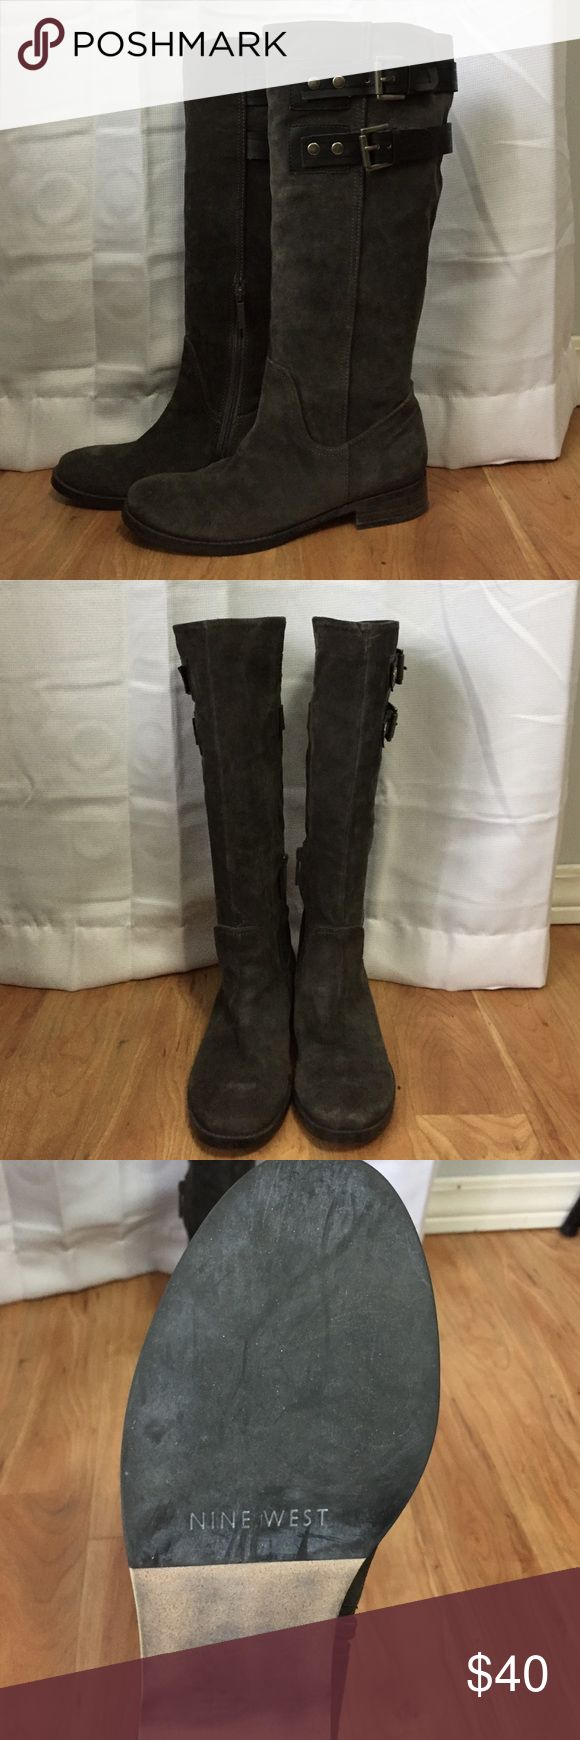 "Nine West Tumble Leather Boots Beautiful grey leather upper boots with buckles. Very minimal wear. Approx 1"" heel. Nine West Shoes Over the Knee Boots"